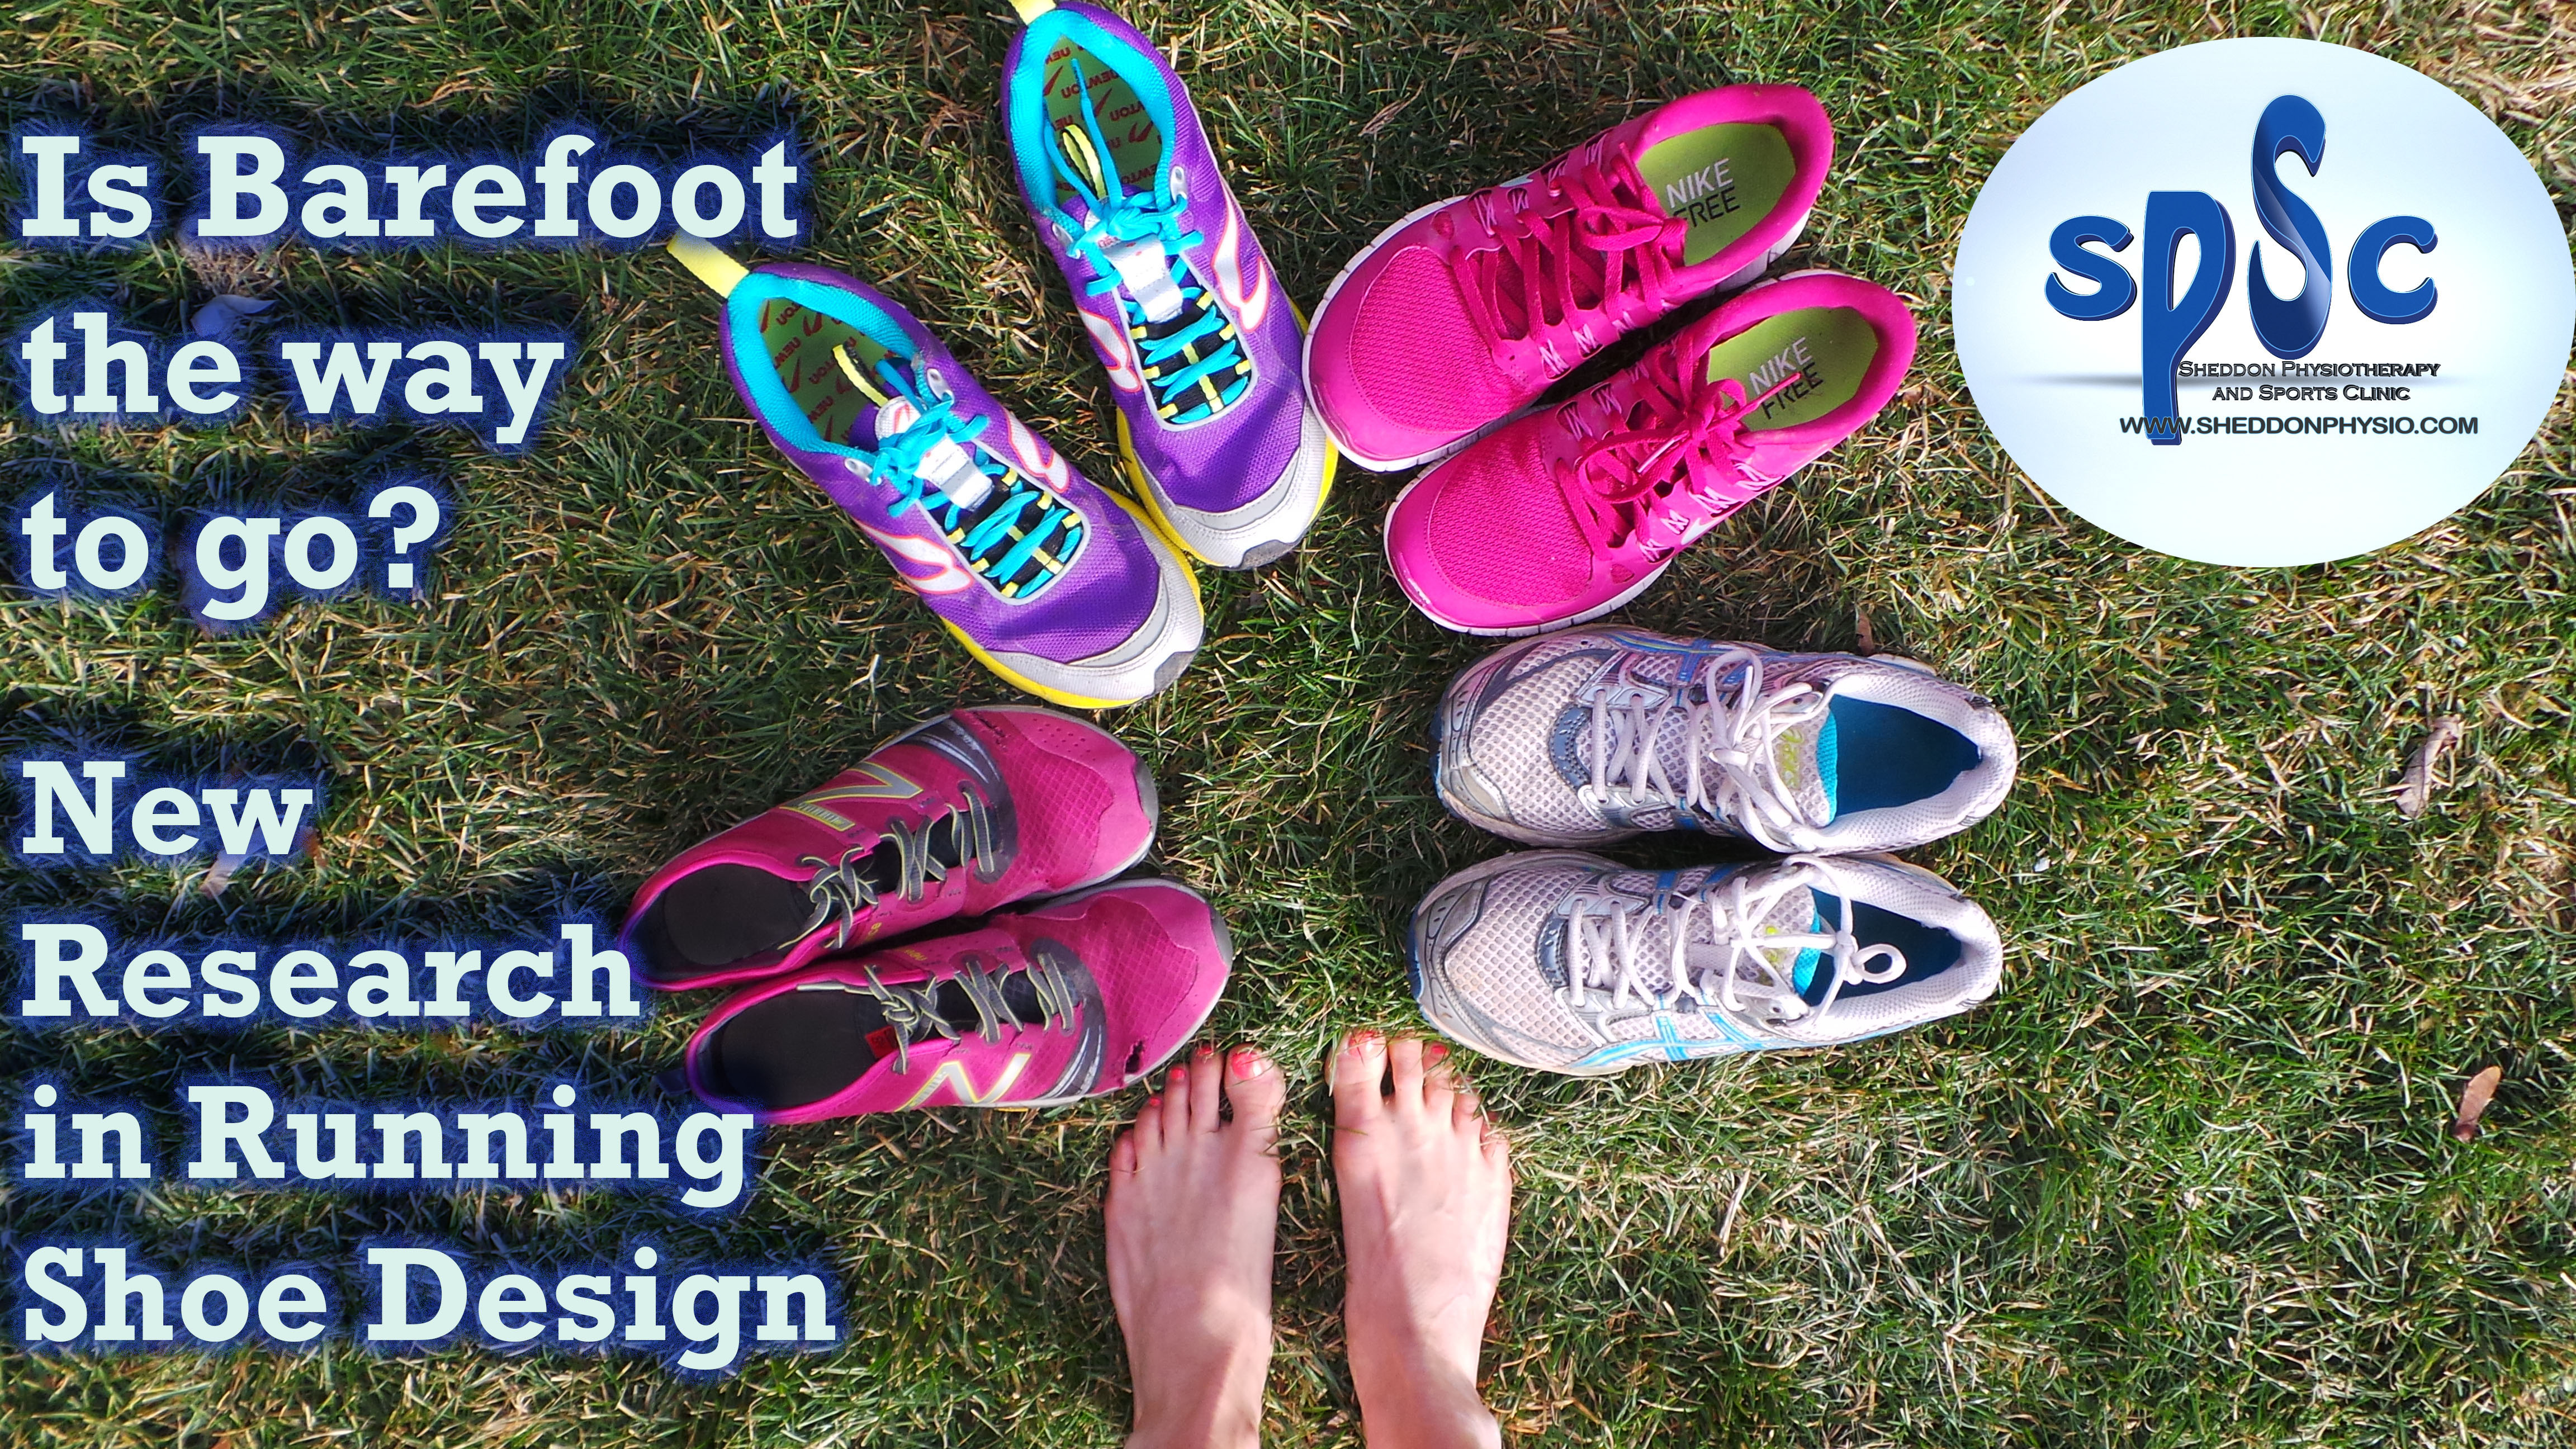 Is Barefoot the way to go? New Research in Running Shoe Design